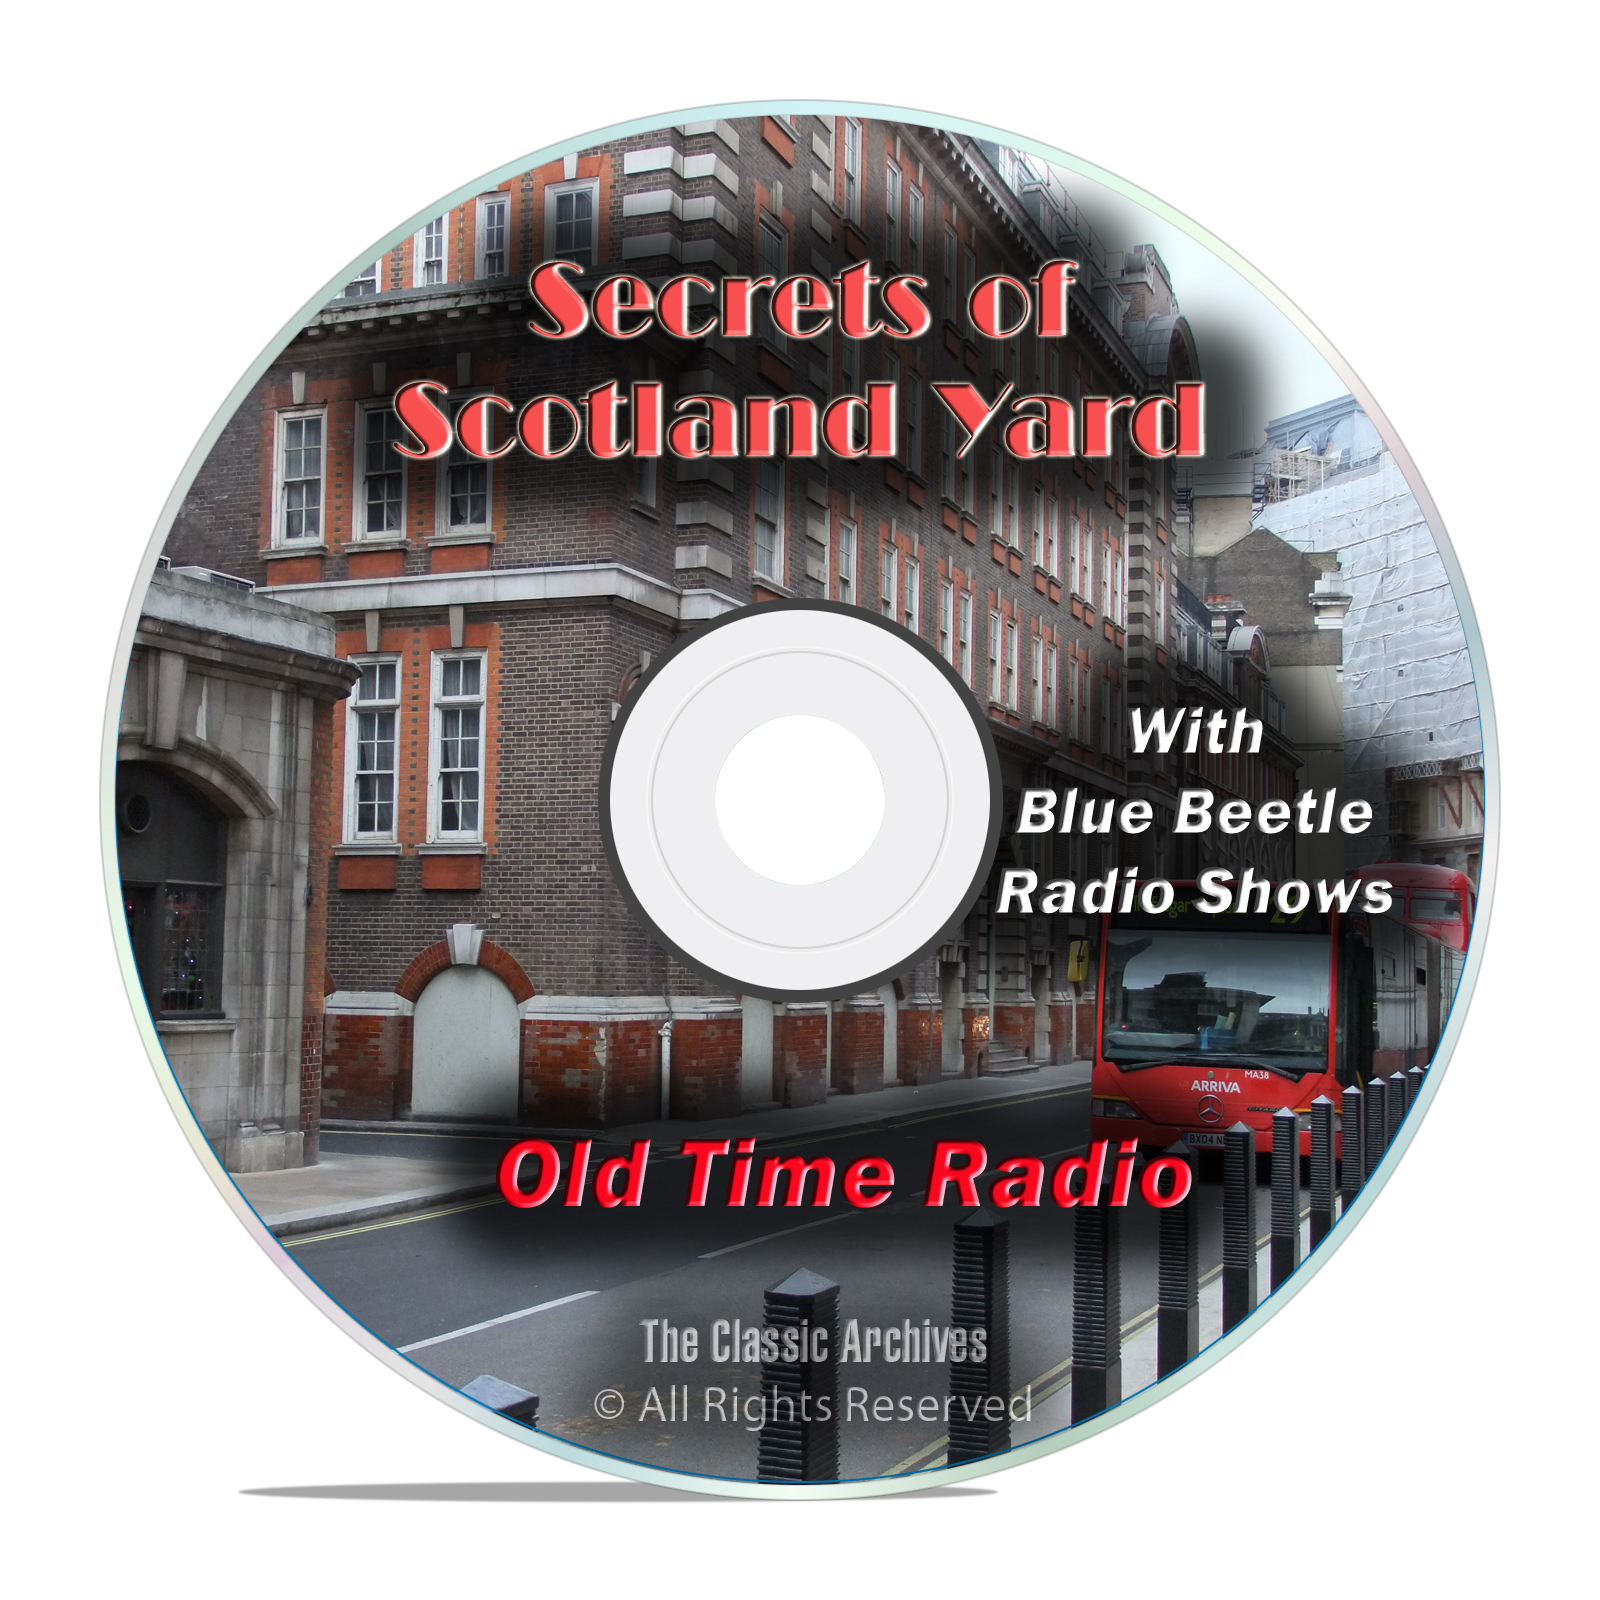 Secrets of Scotland Yard, 941 Old Time Radio Mystery Shows, OTR mp3 DVD